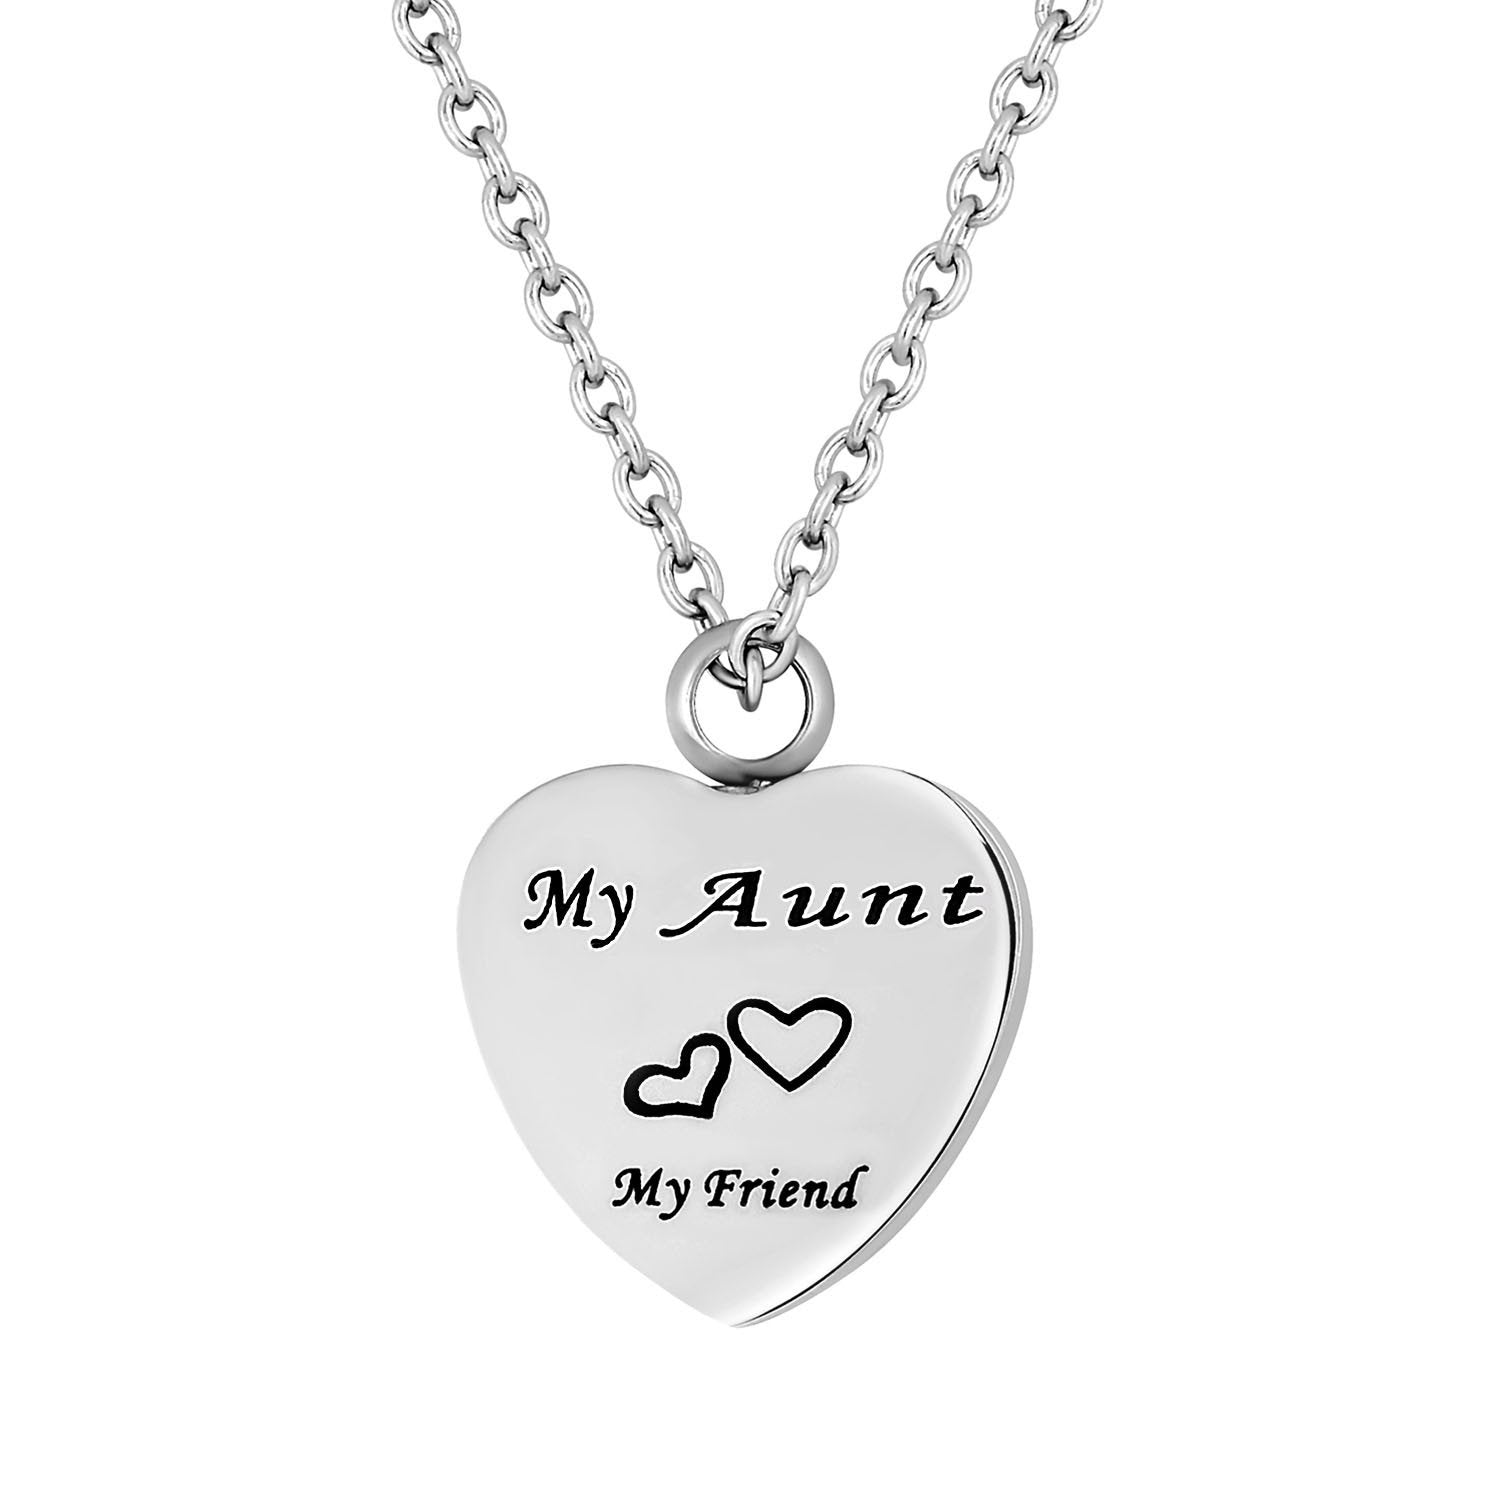 on card chain reads gold aunt dipped dogeared messaging beautiful charm butterfly necklace